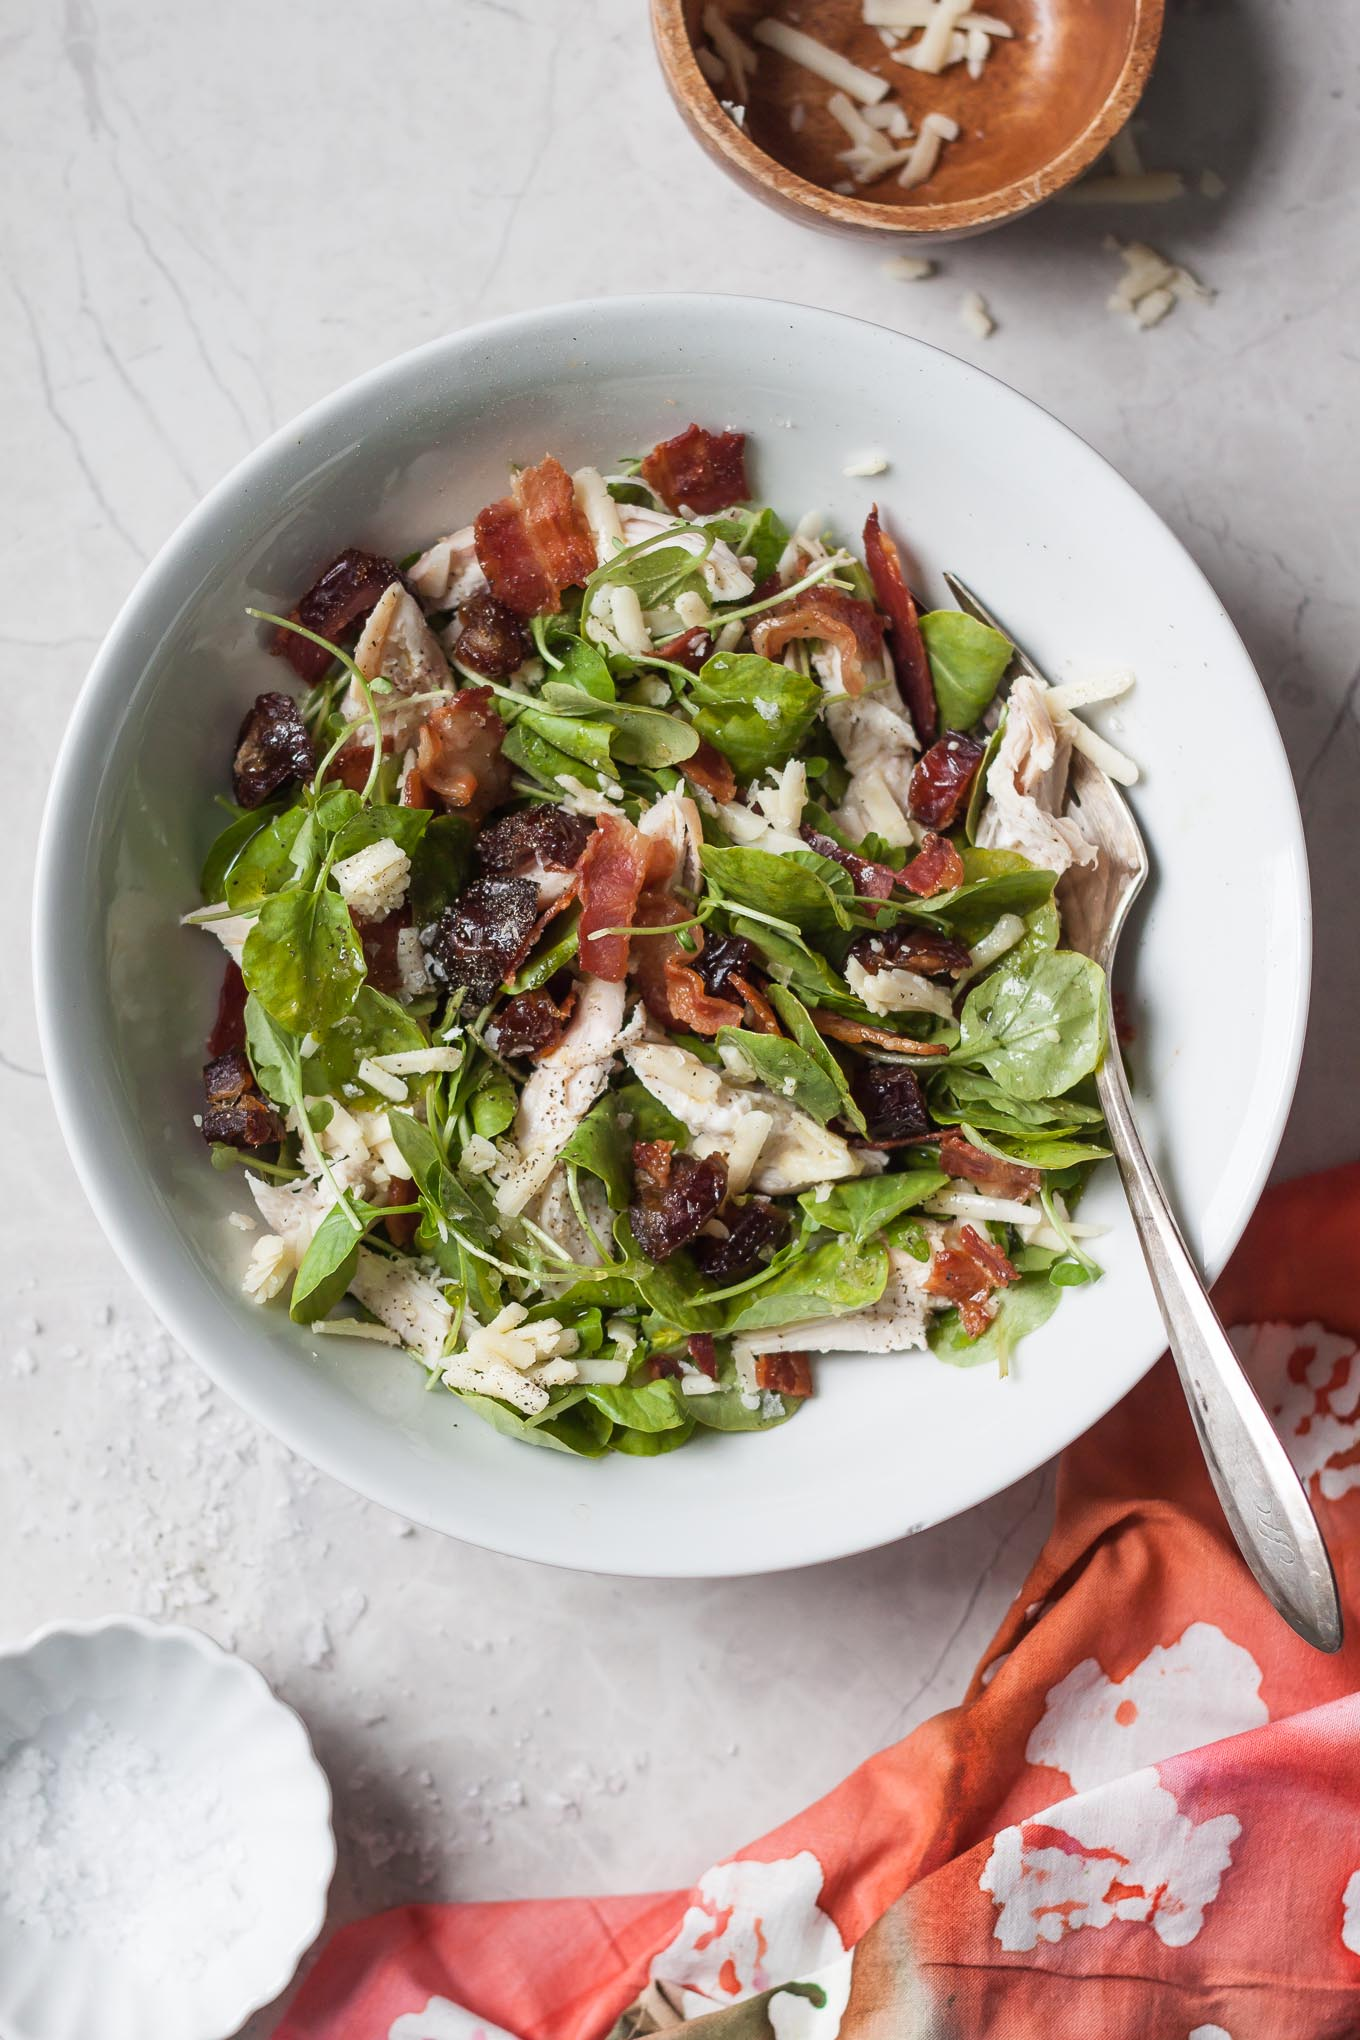 Chicken Bacon Cheddar and Medjool Date Salad